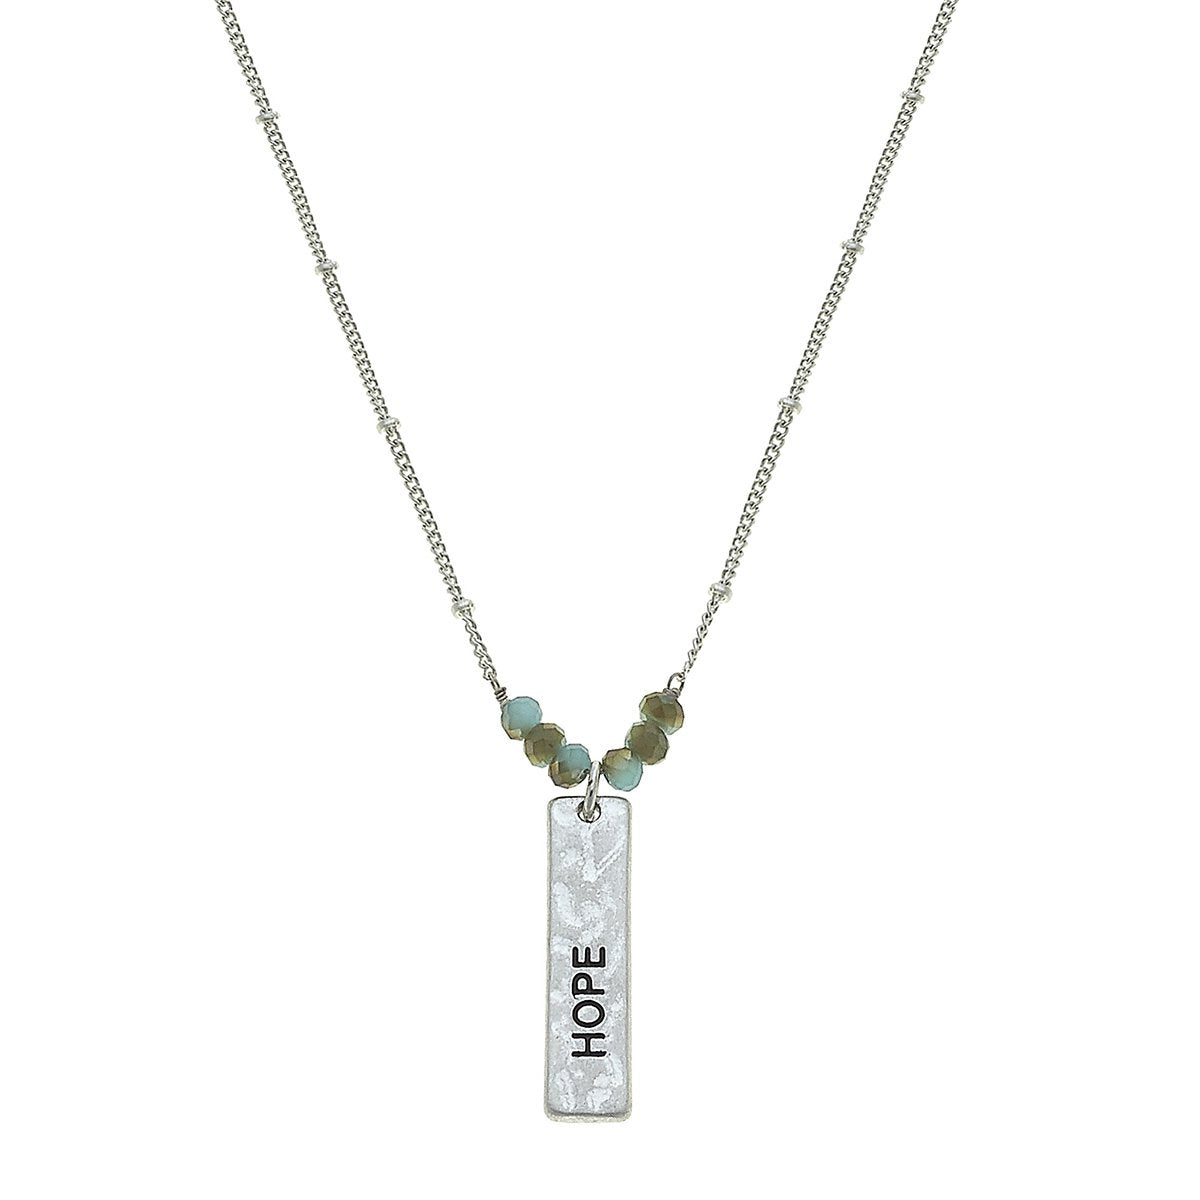 Reversible Hope Bar Necklace in Worn Silver